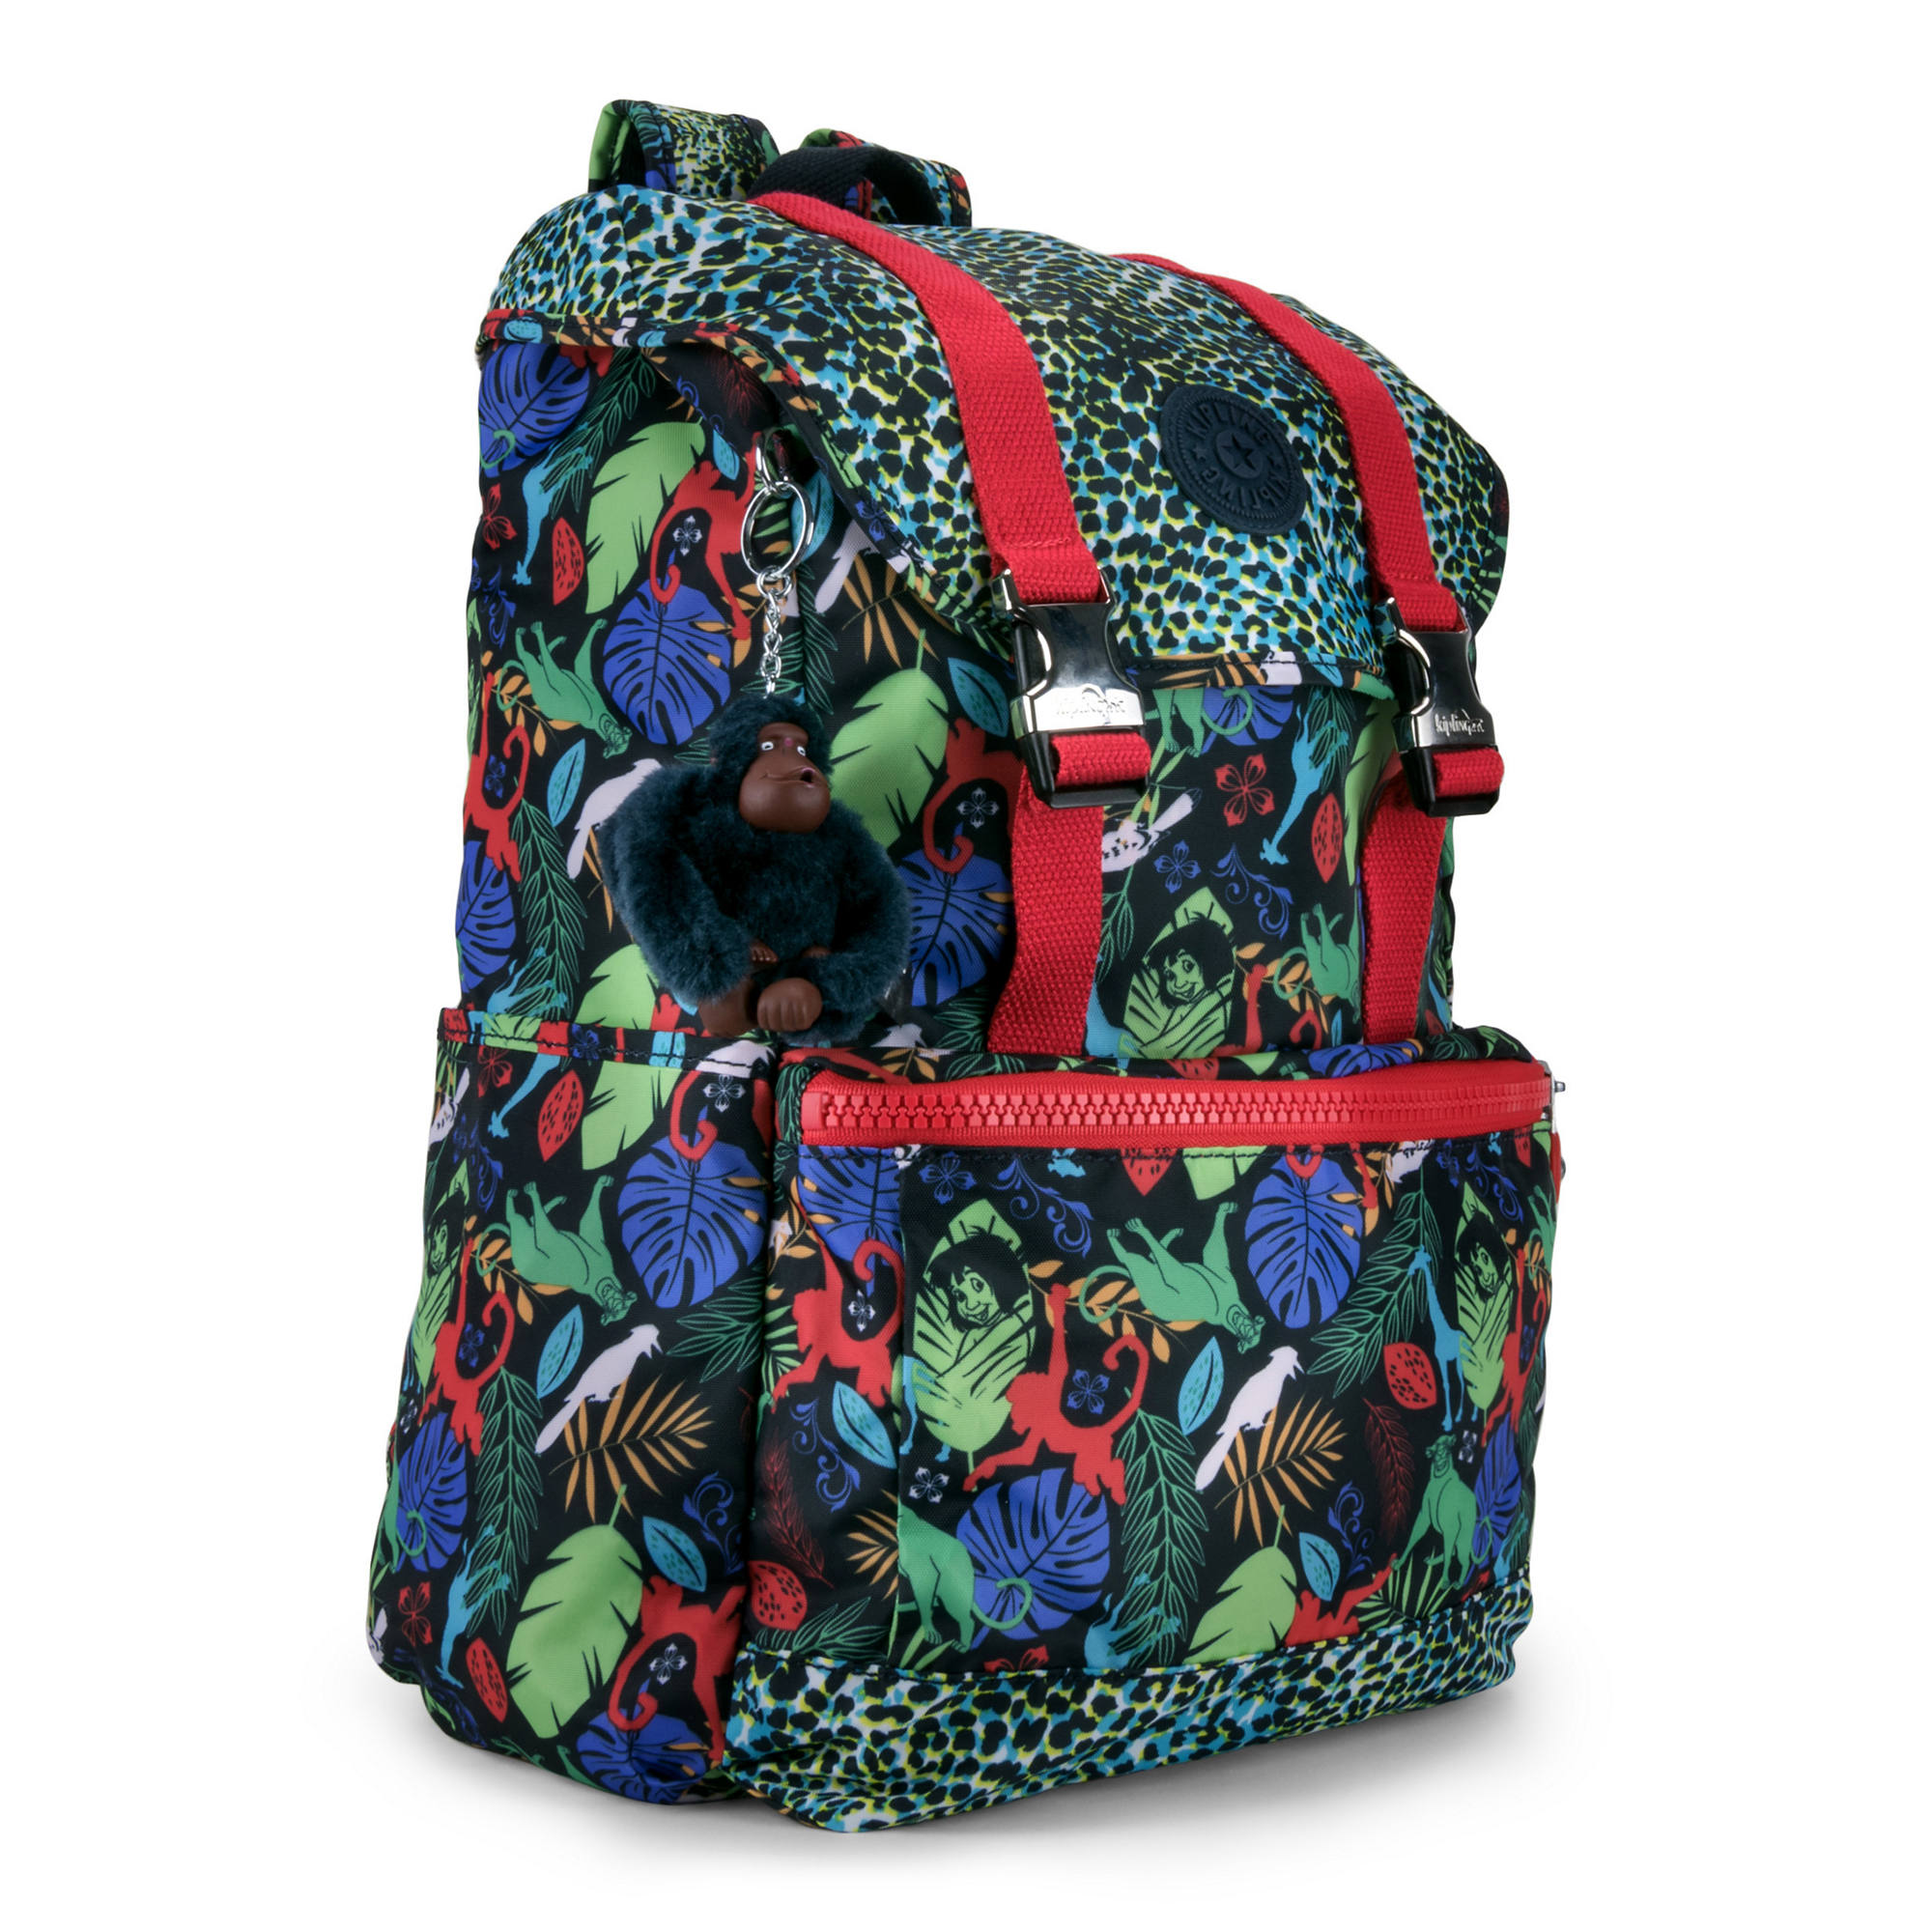 6688f565607 Disney s Jungle Book Experience Laptop Backpack